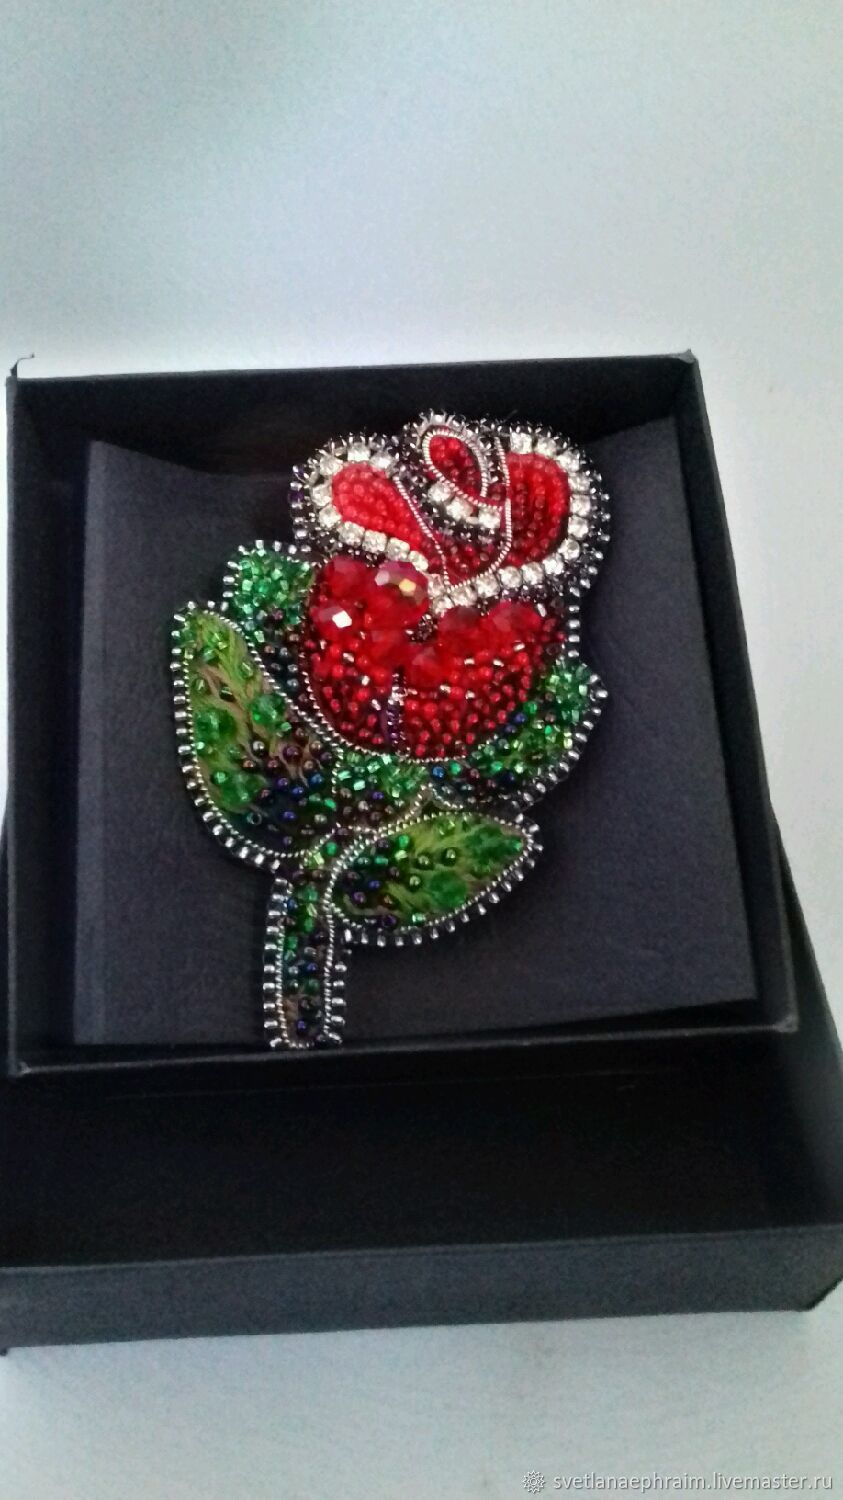 A beaded brooch rose, Brooches, Springs,  Фото №1